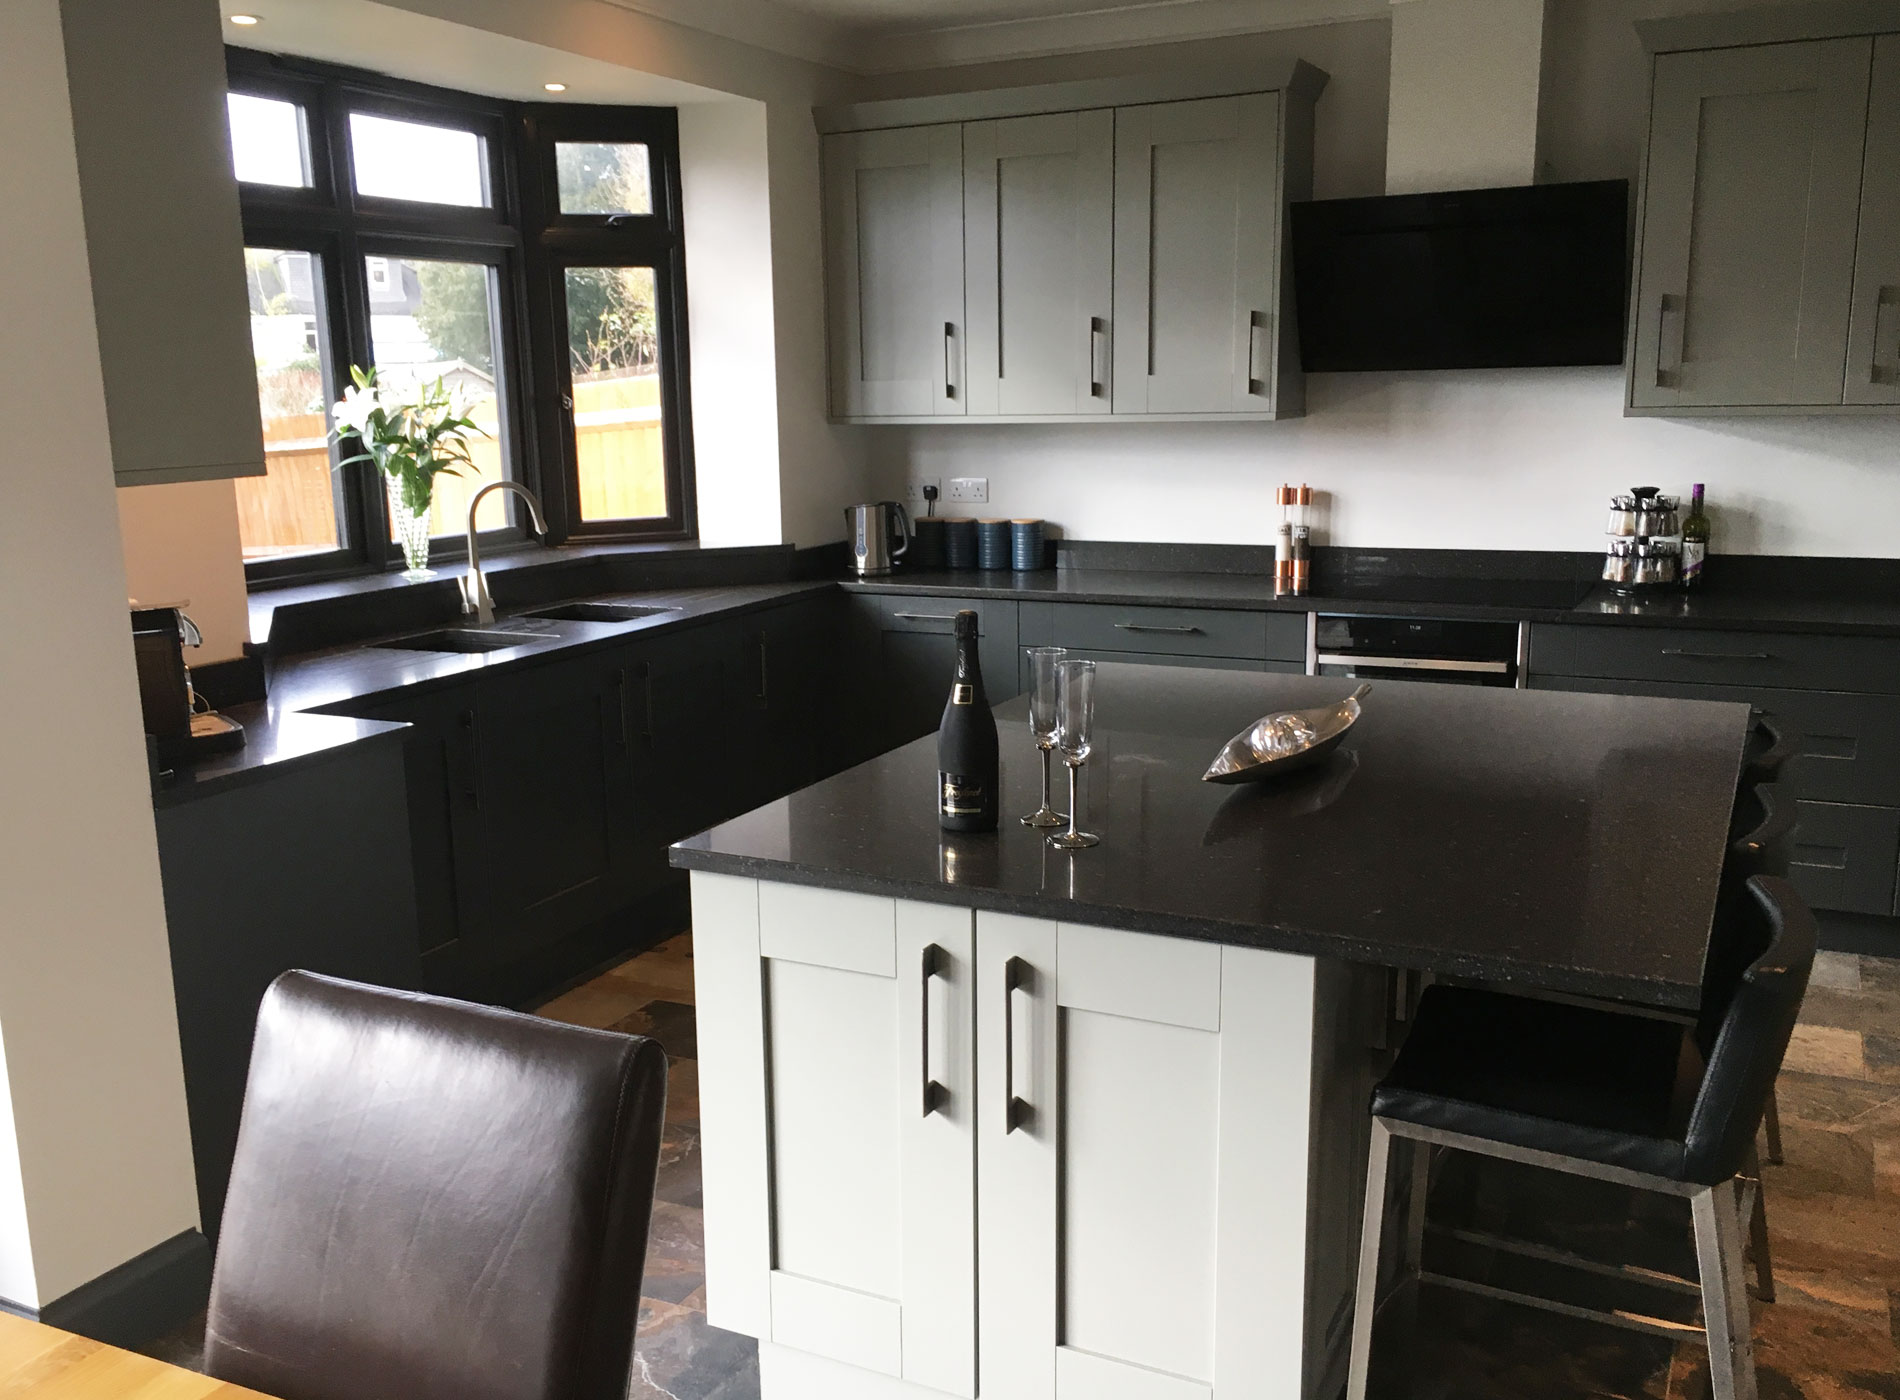 Full house extension, West Wickham - Kitchen